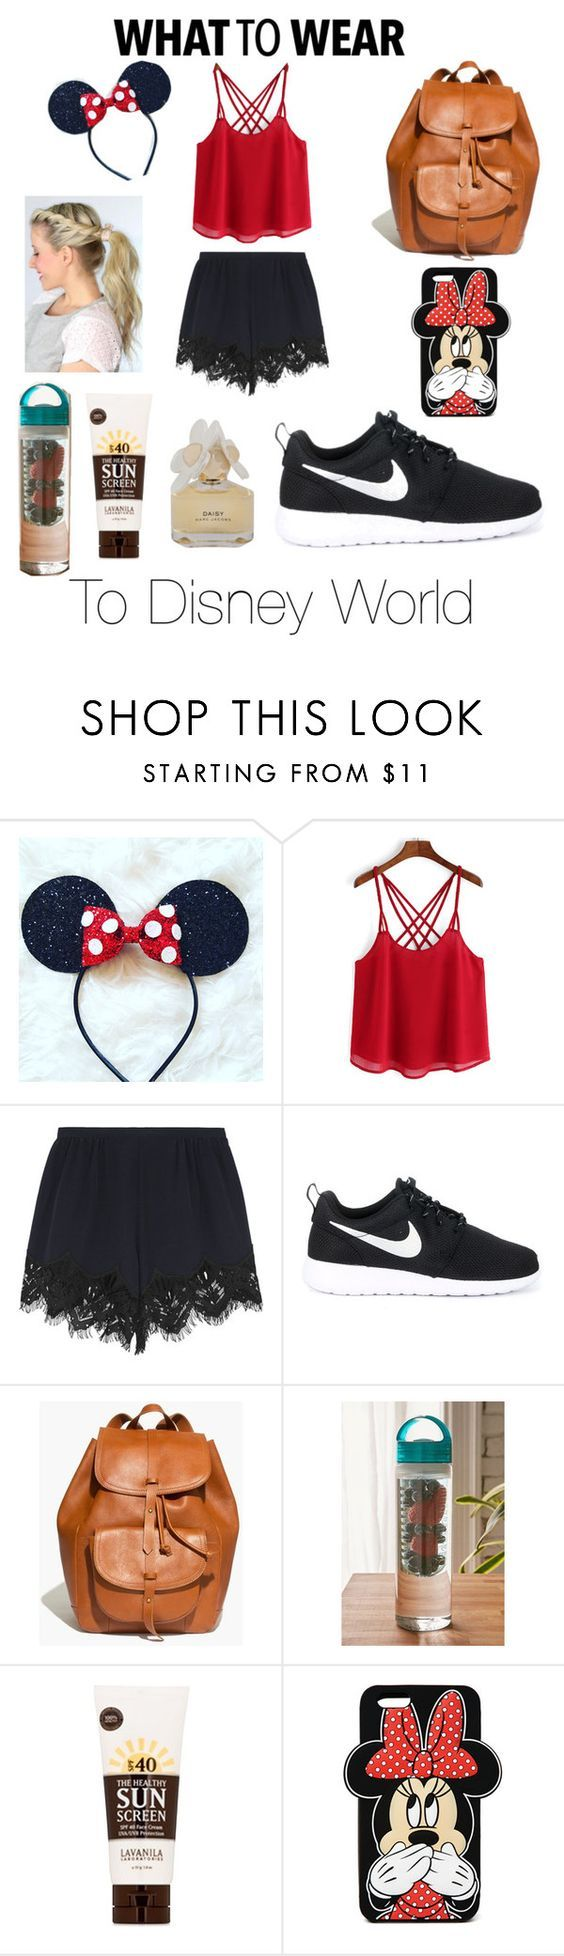 What To Wear To Disney World by ecthebooklion ❤ liked on Polyvore featuring Chloé, NIKE, Madewell, Urban Outfitters, Lavanila, Forever 21, Marc by Marc Jacobs, disney and disneybound